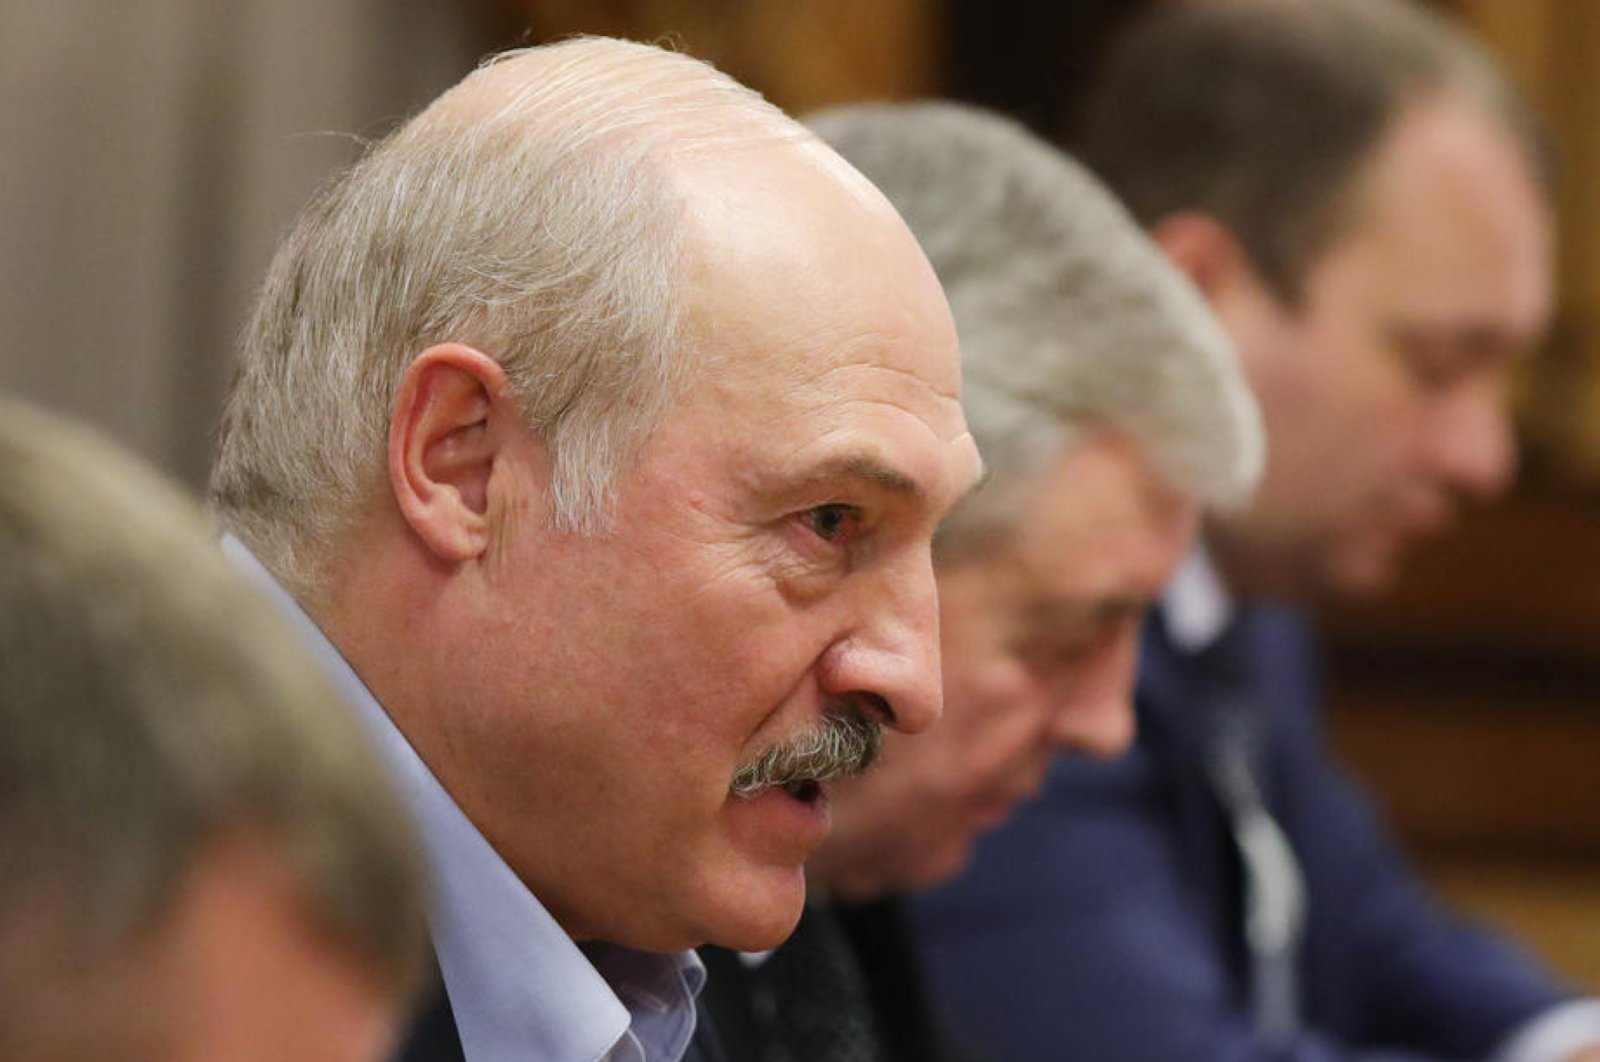 File photo of the Belarusian President Alexander Lukashenko, Feb. 7 2020. (EPA Photo)